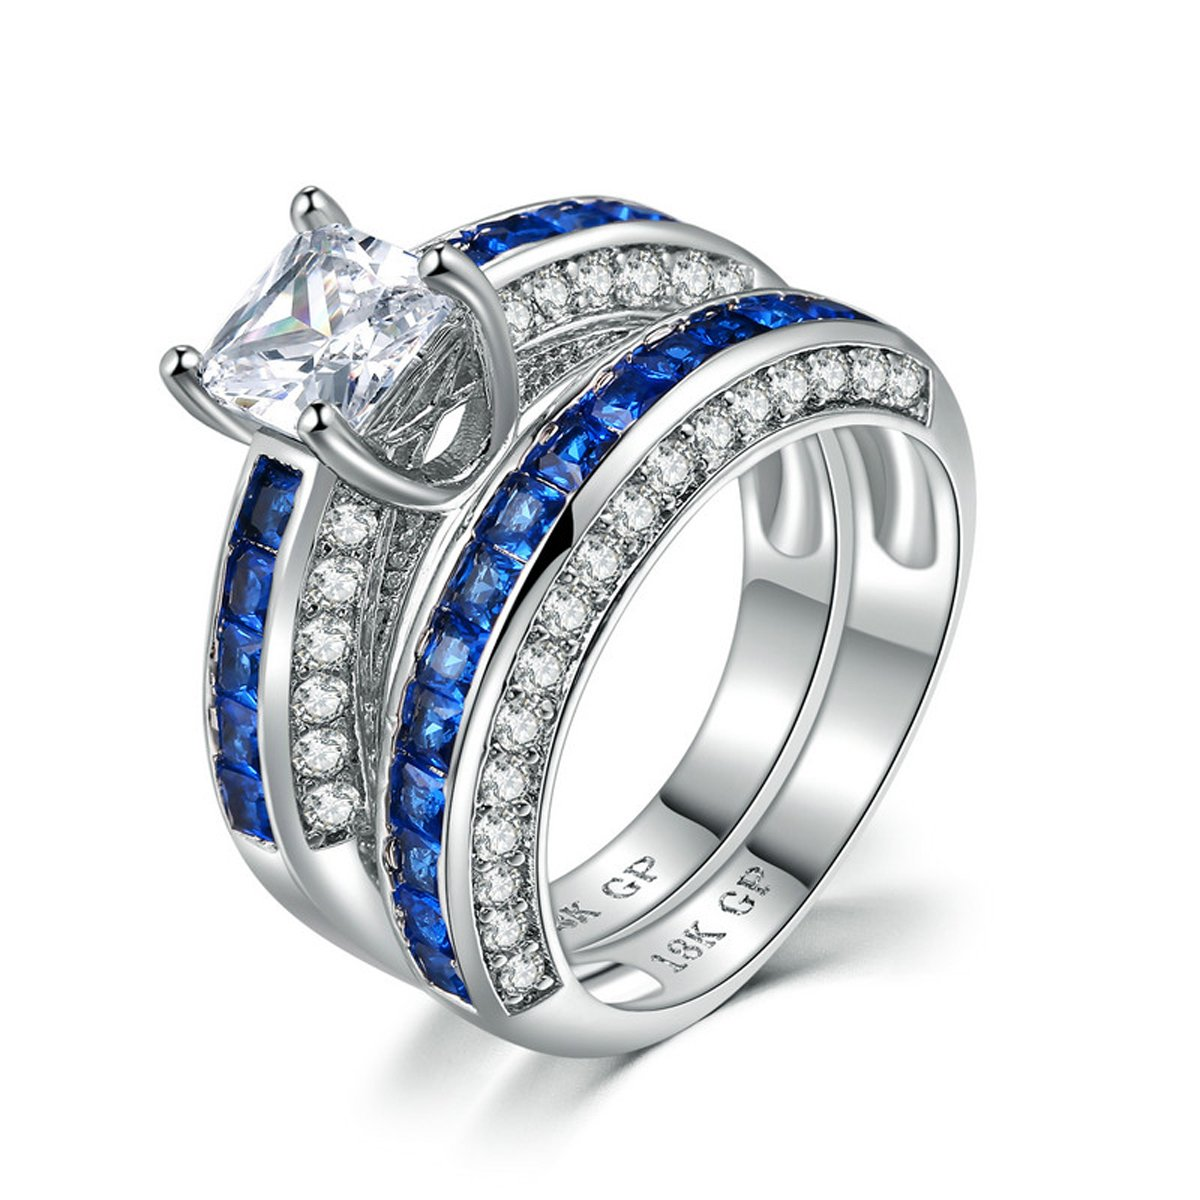 Women 18KGP Princess Cut CZ Blue Sapphire Wedding Anniversary Engagement Bridal Rings Set (10)